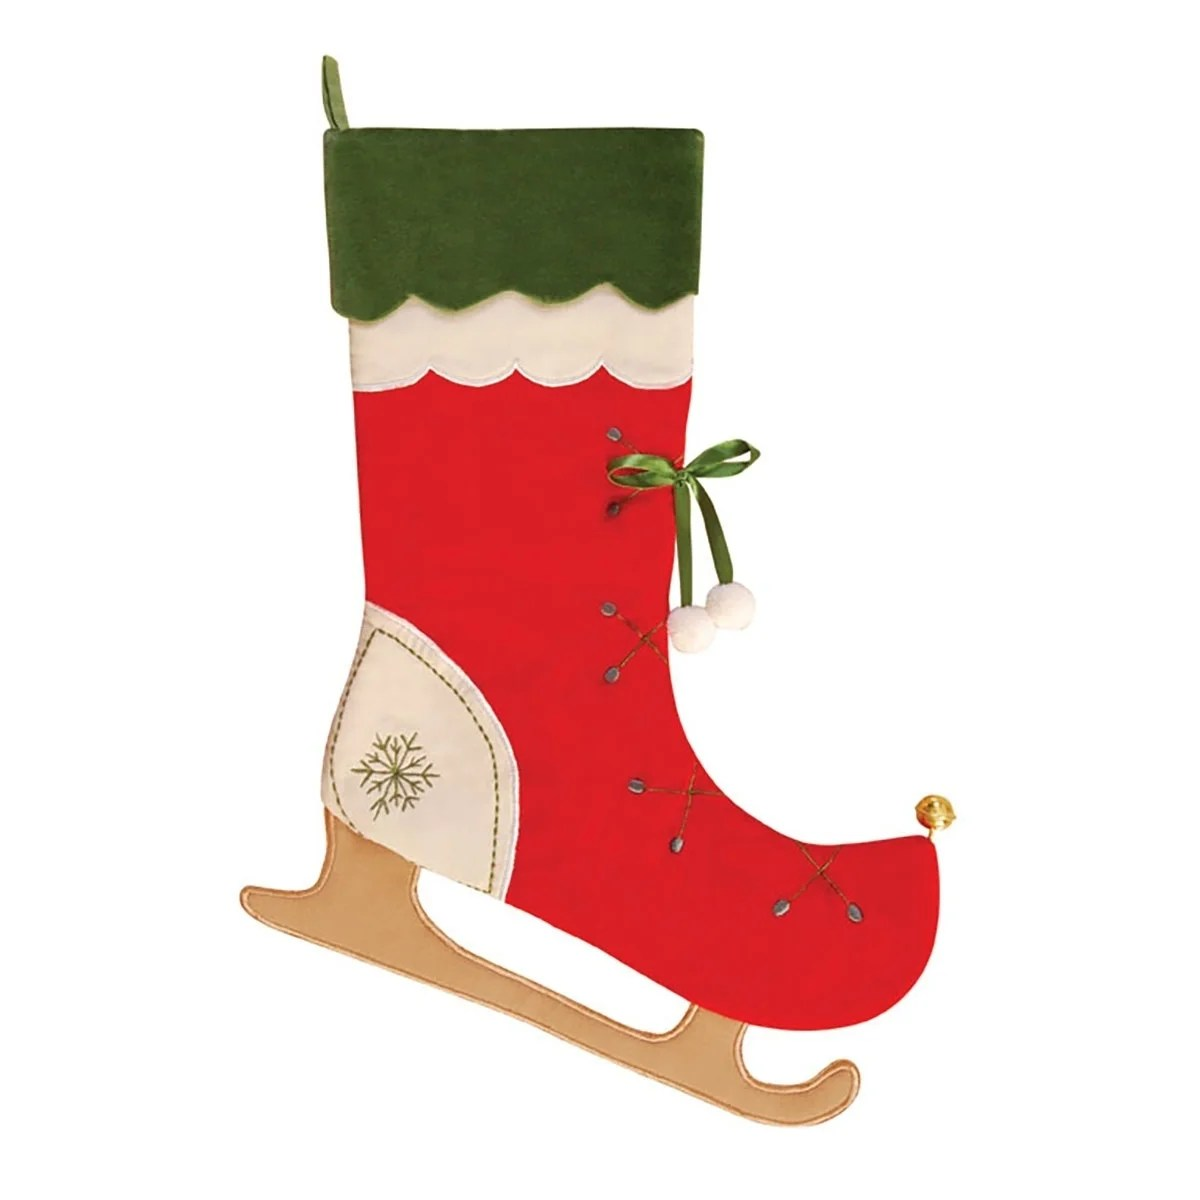 jolly skates embroidered christmas